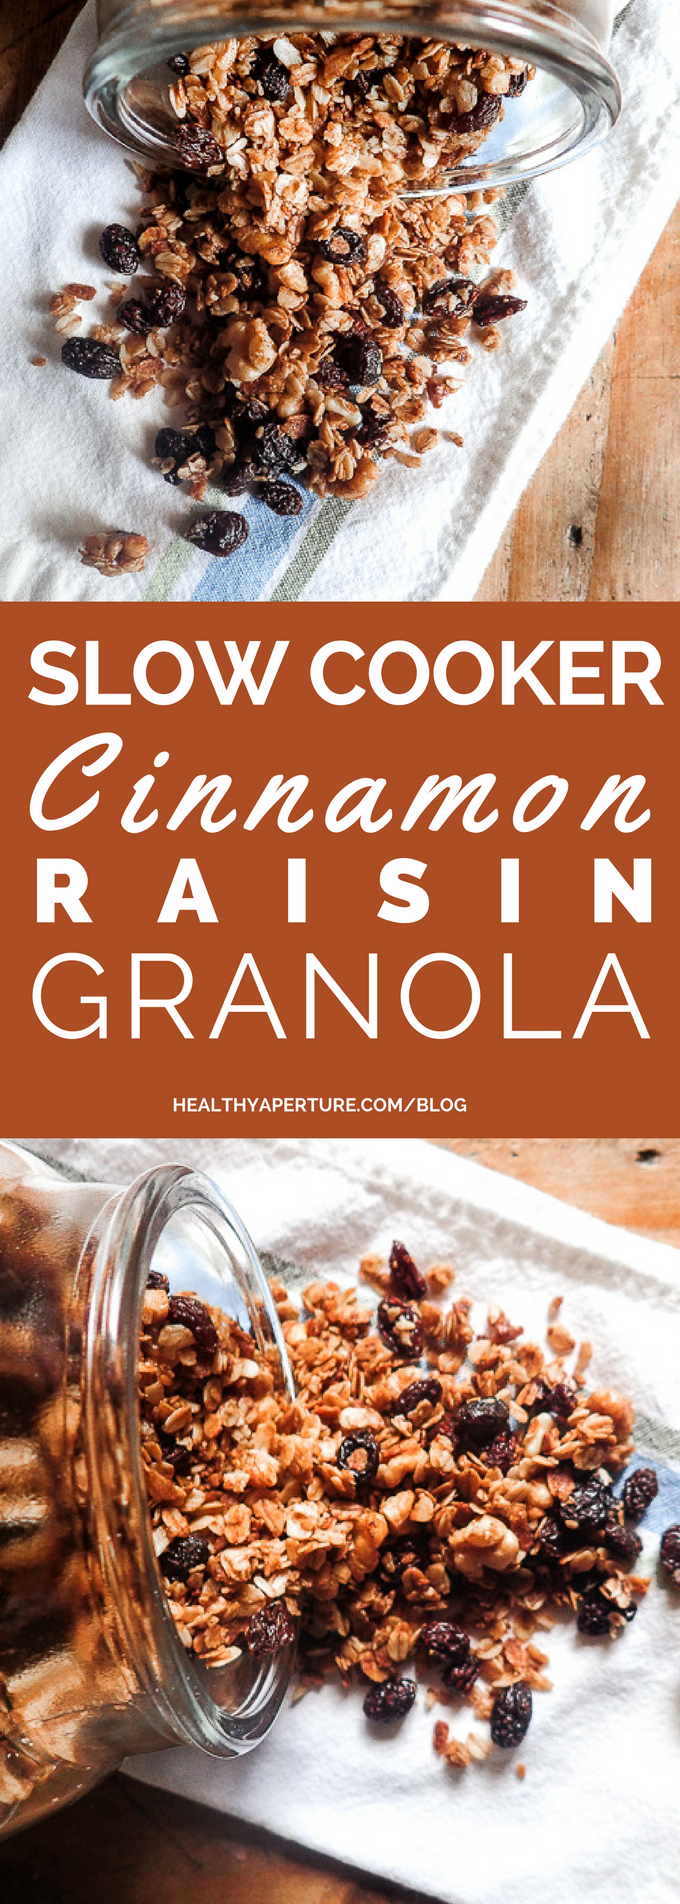 Slow Cooker Cinnamon Raisin Granola